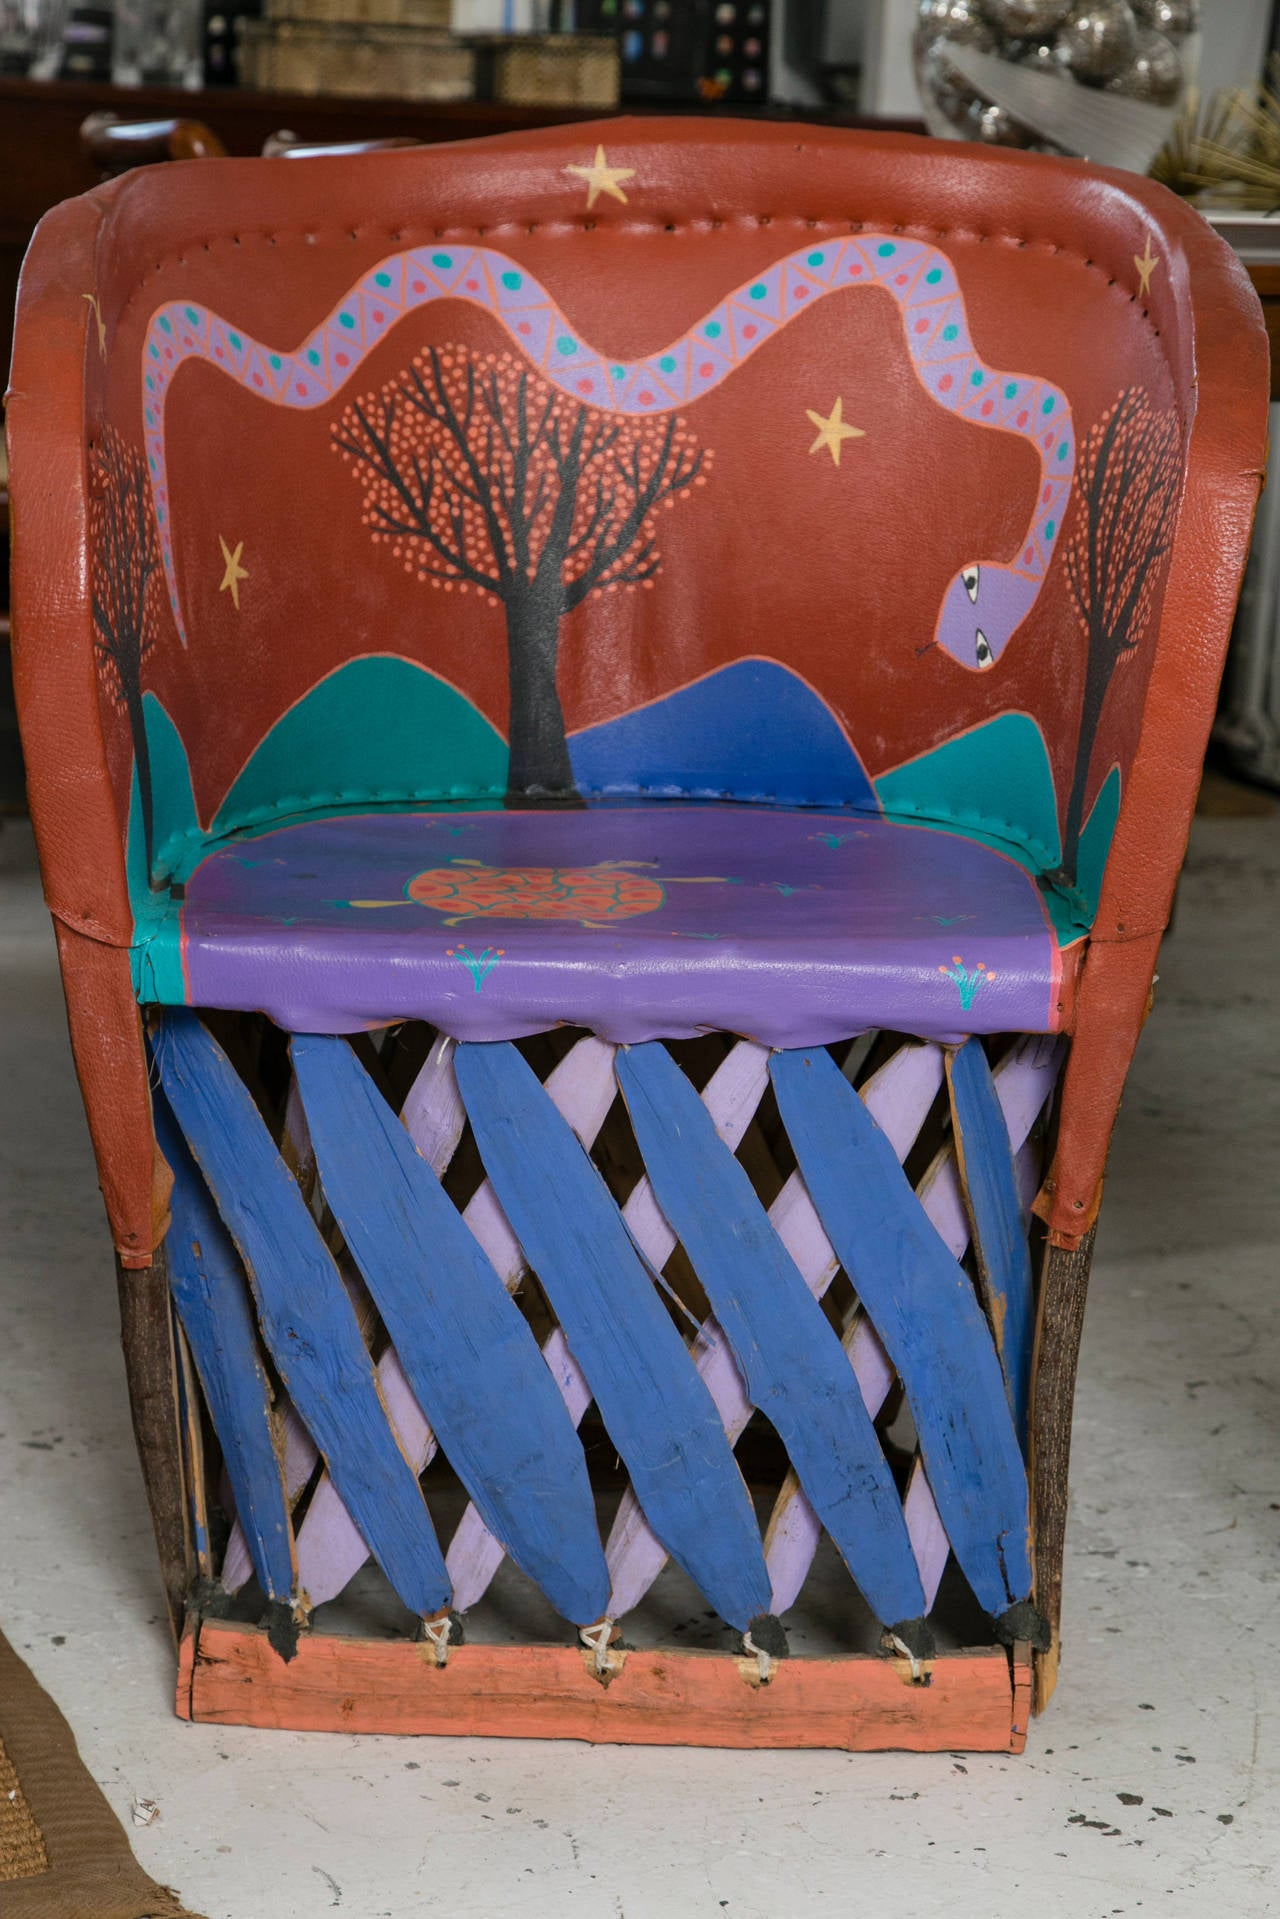 stool chair fantastic furniture bed pillow backrest set of painted chairs from santa fe new mexico